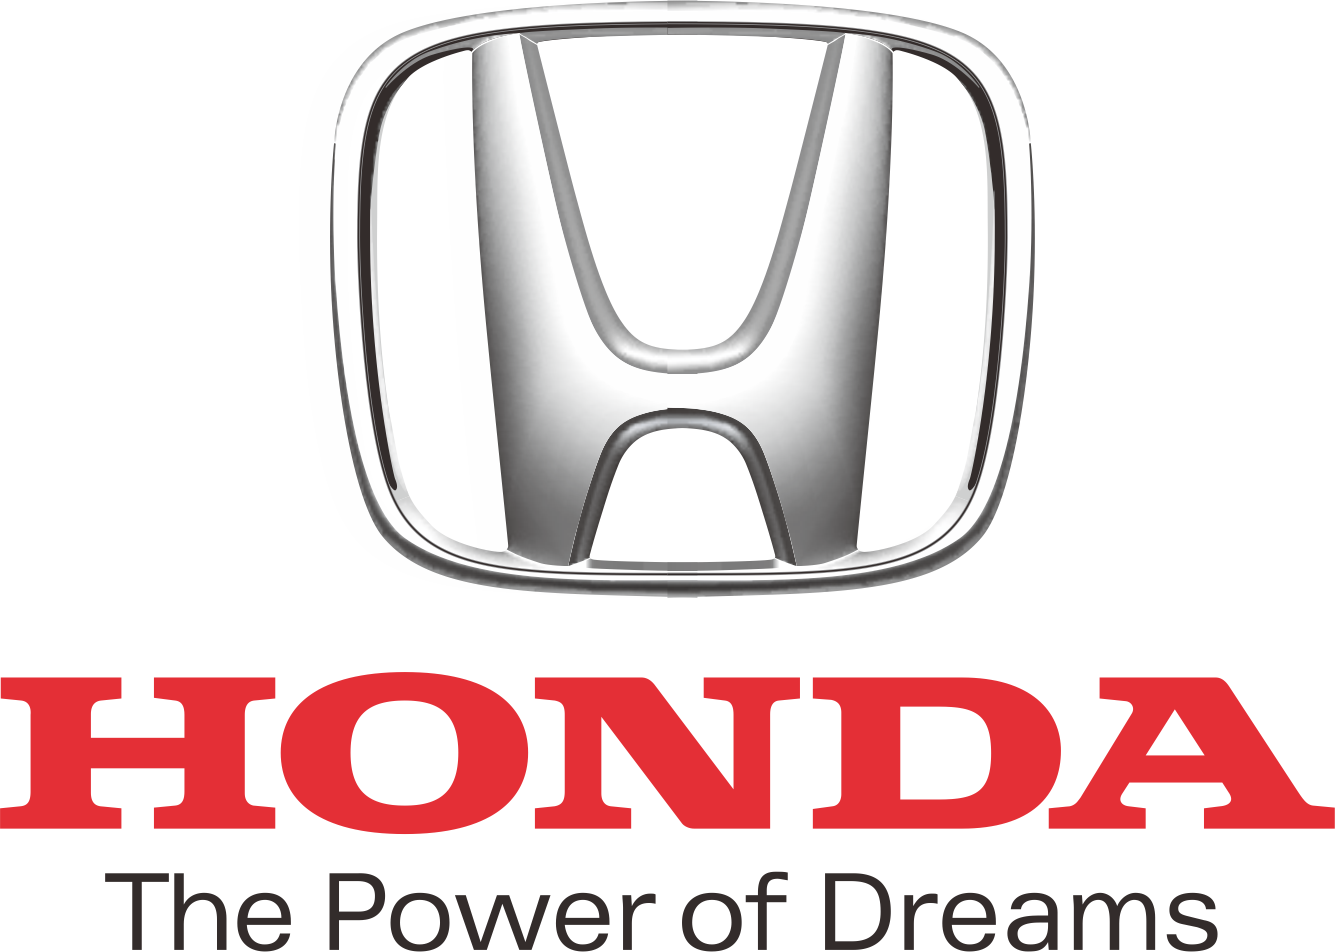 Honda clipart the power dreams Images PNG PNG Transparent Advertisement